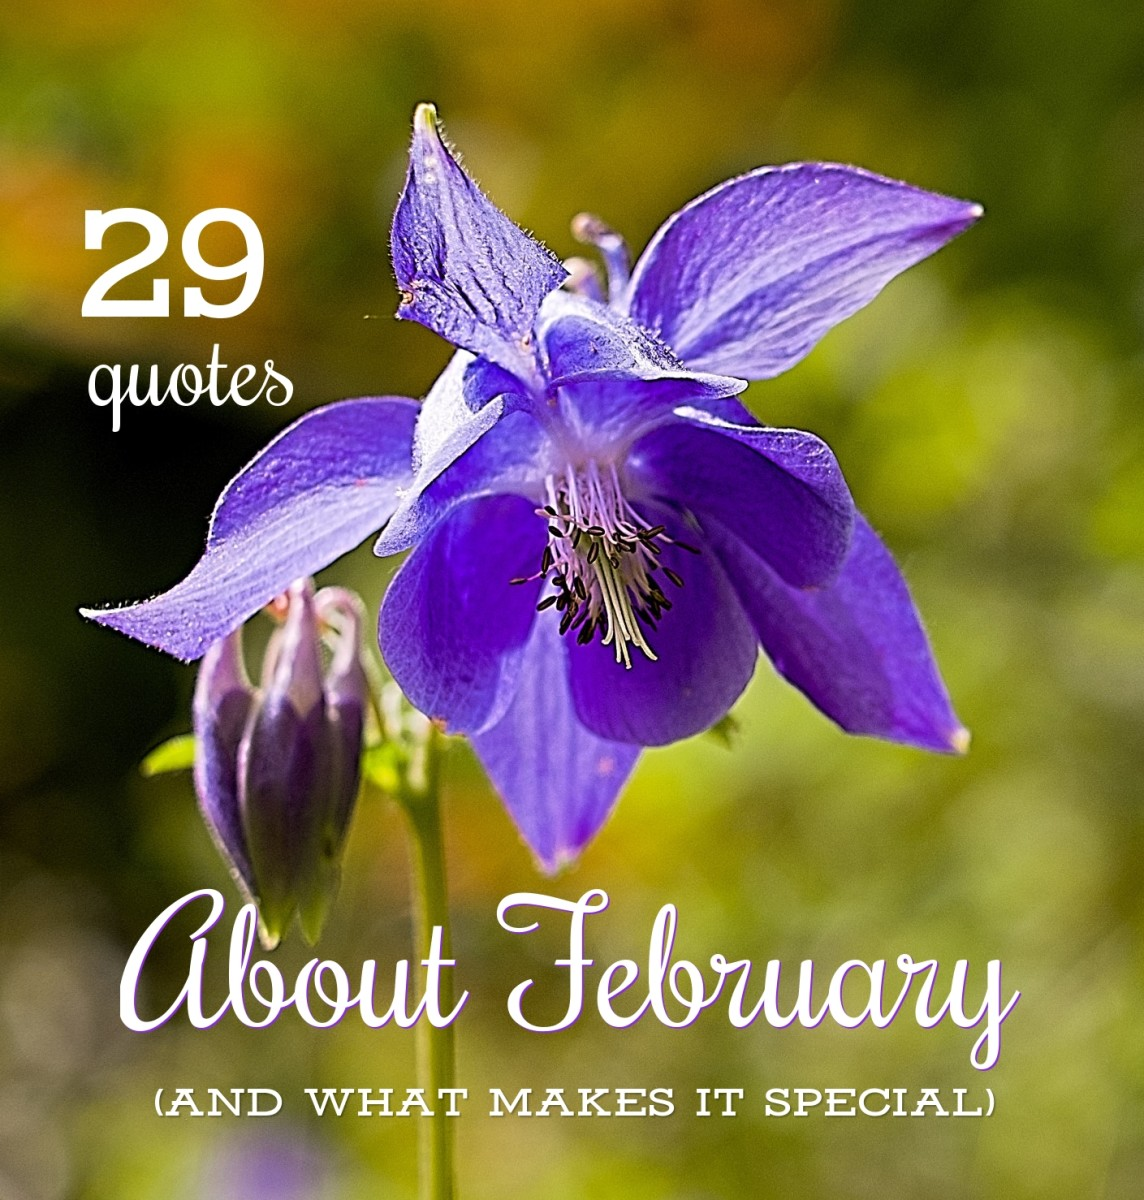 29 Quotes About February and What Makes It Special